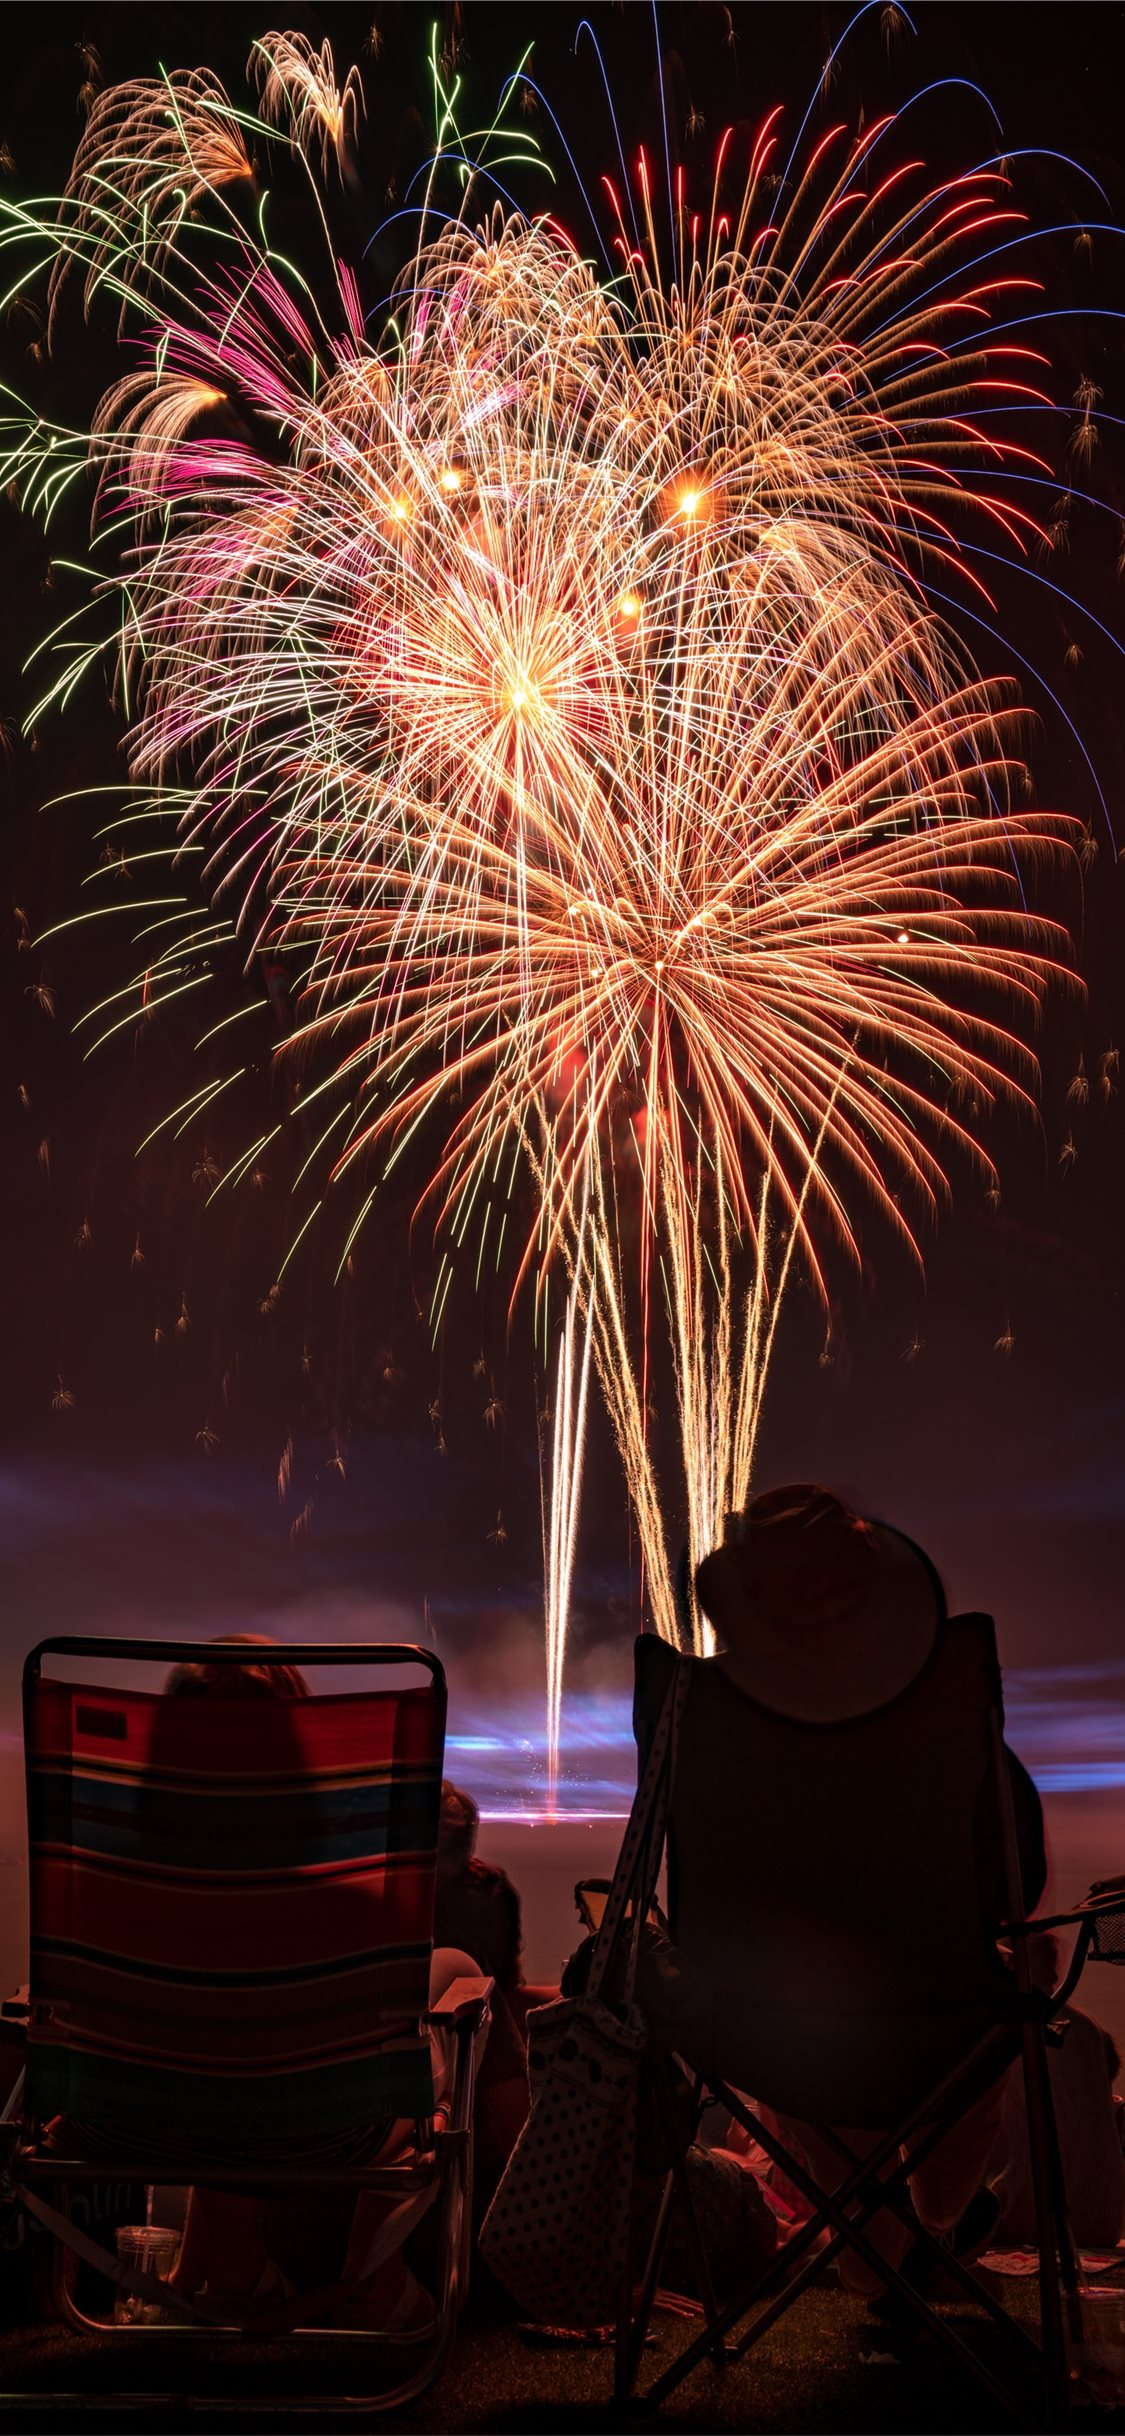 two people watching fireworks display iPhone X Wallpapers